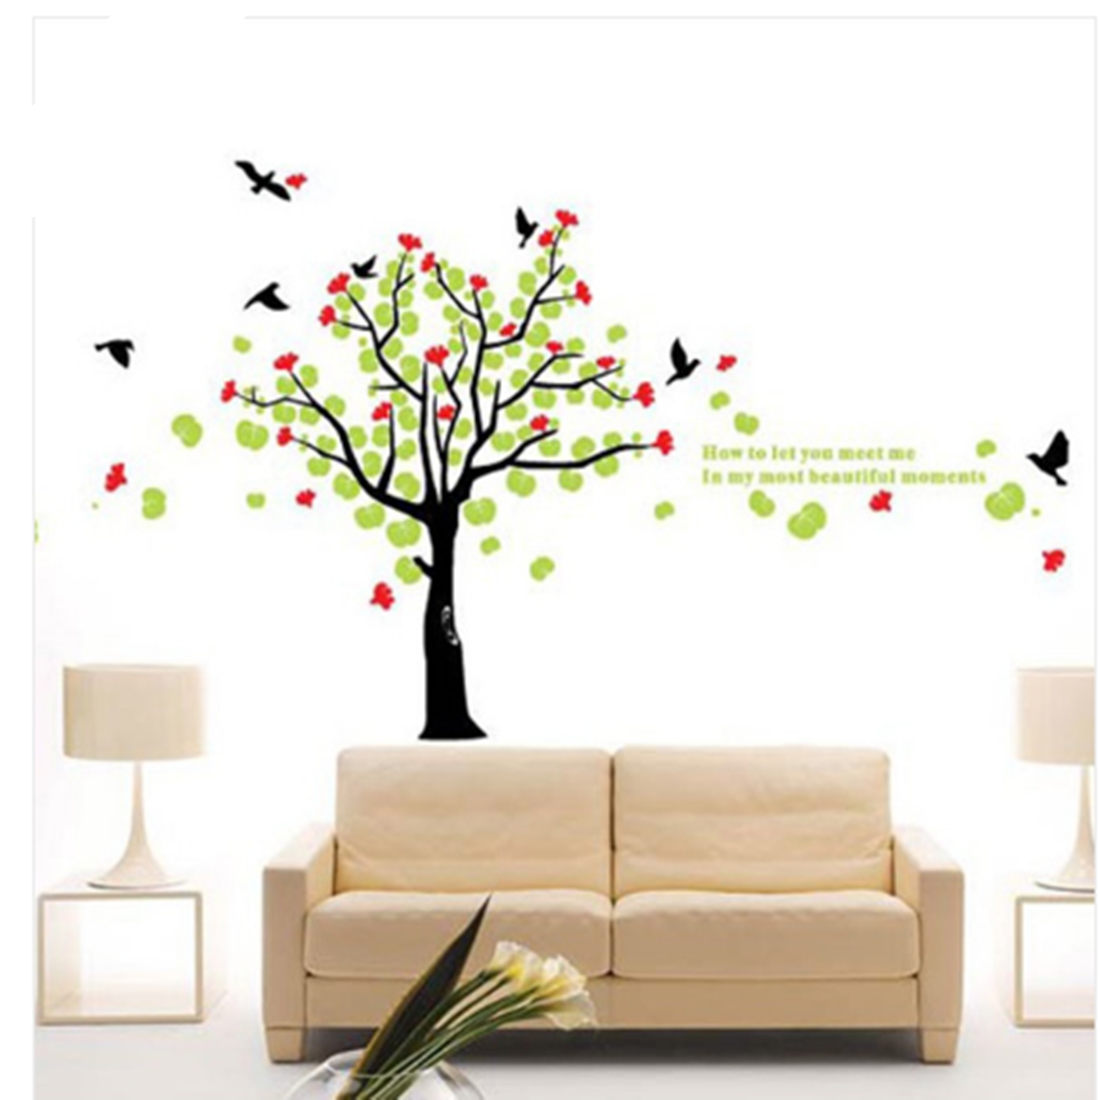 Vinyl Home Room Decor Art Quote Wall Decal Stickers ...